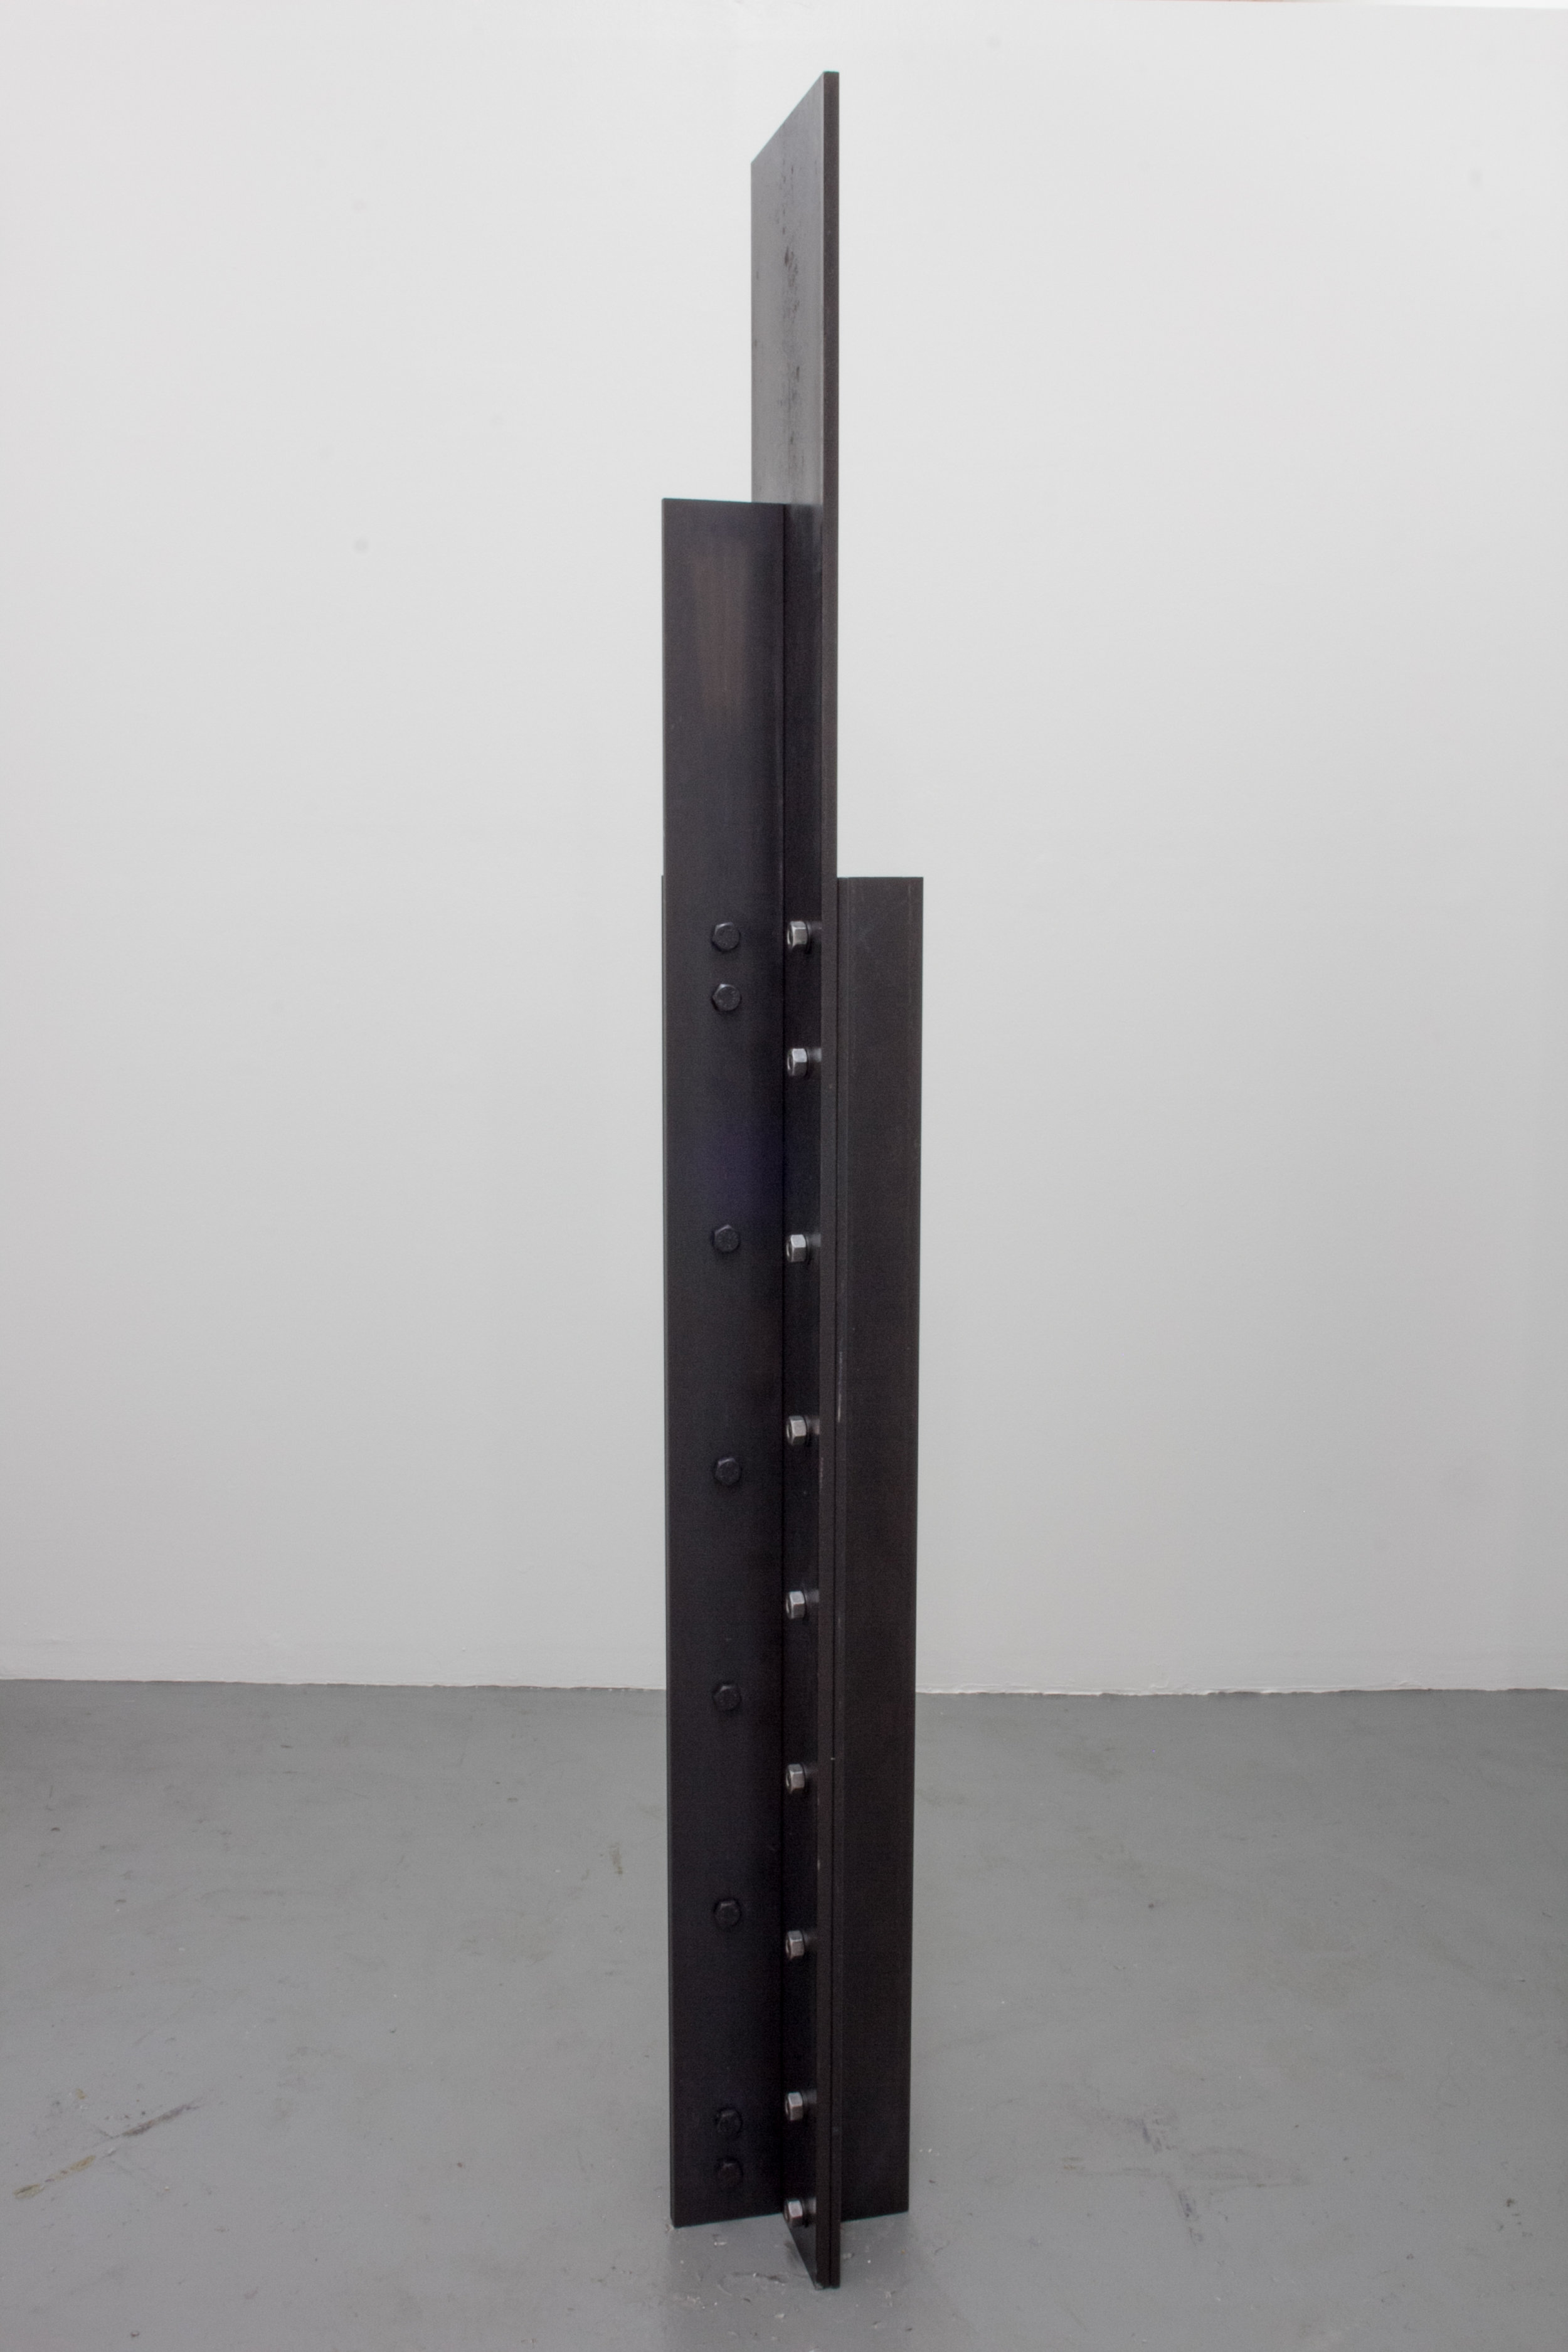 Like That Feeling When You Wake Up In The Morning , 2015 Steel, hardware 72 x 12 x 12 inches